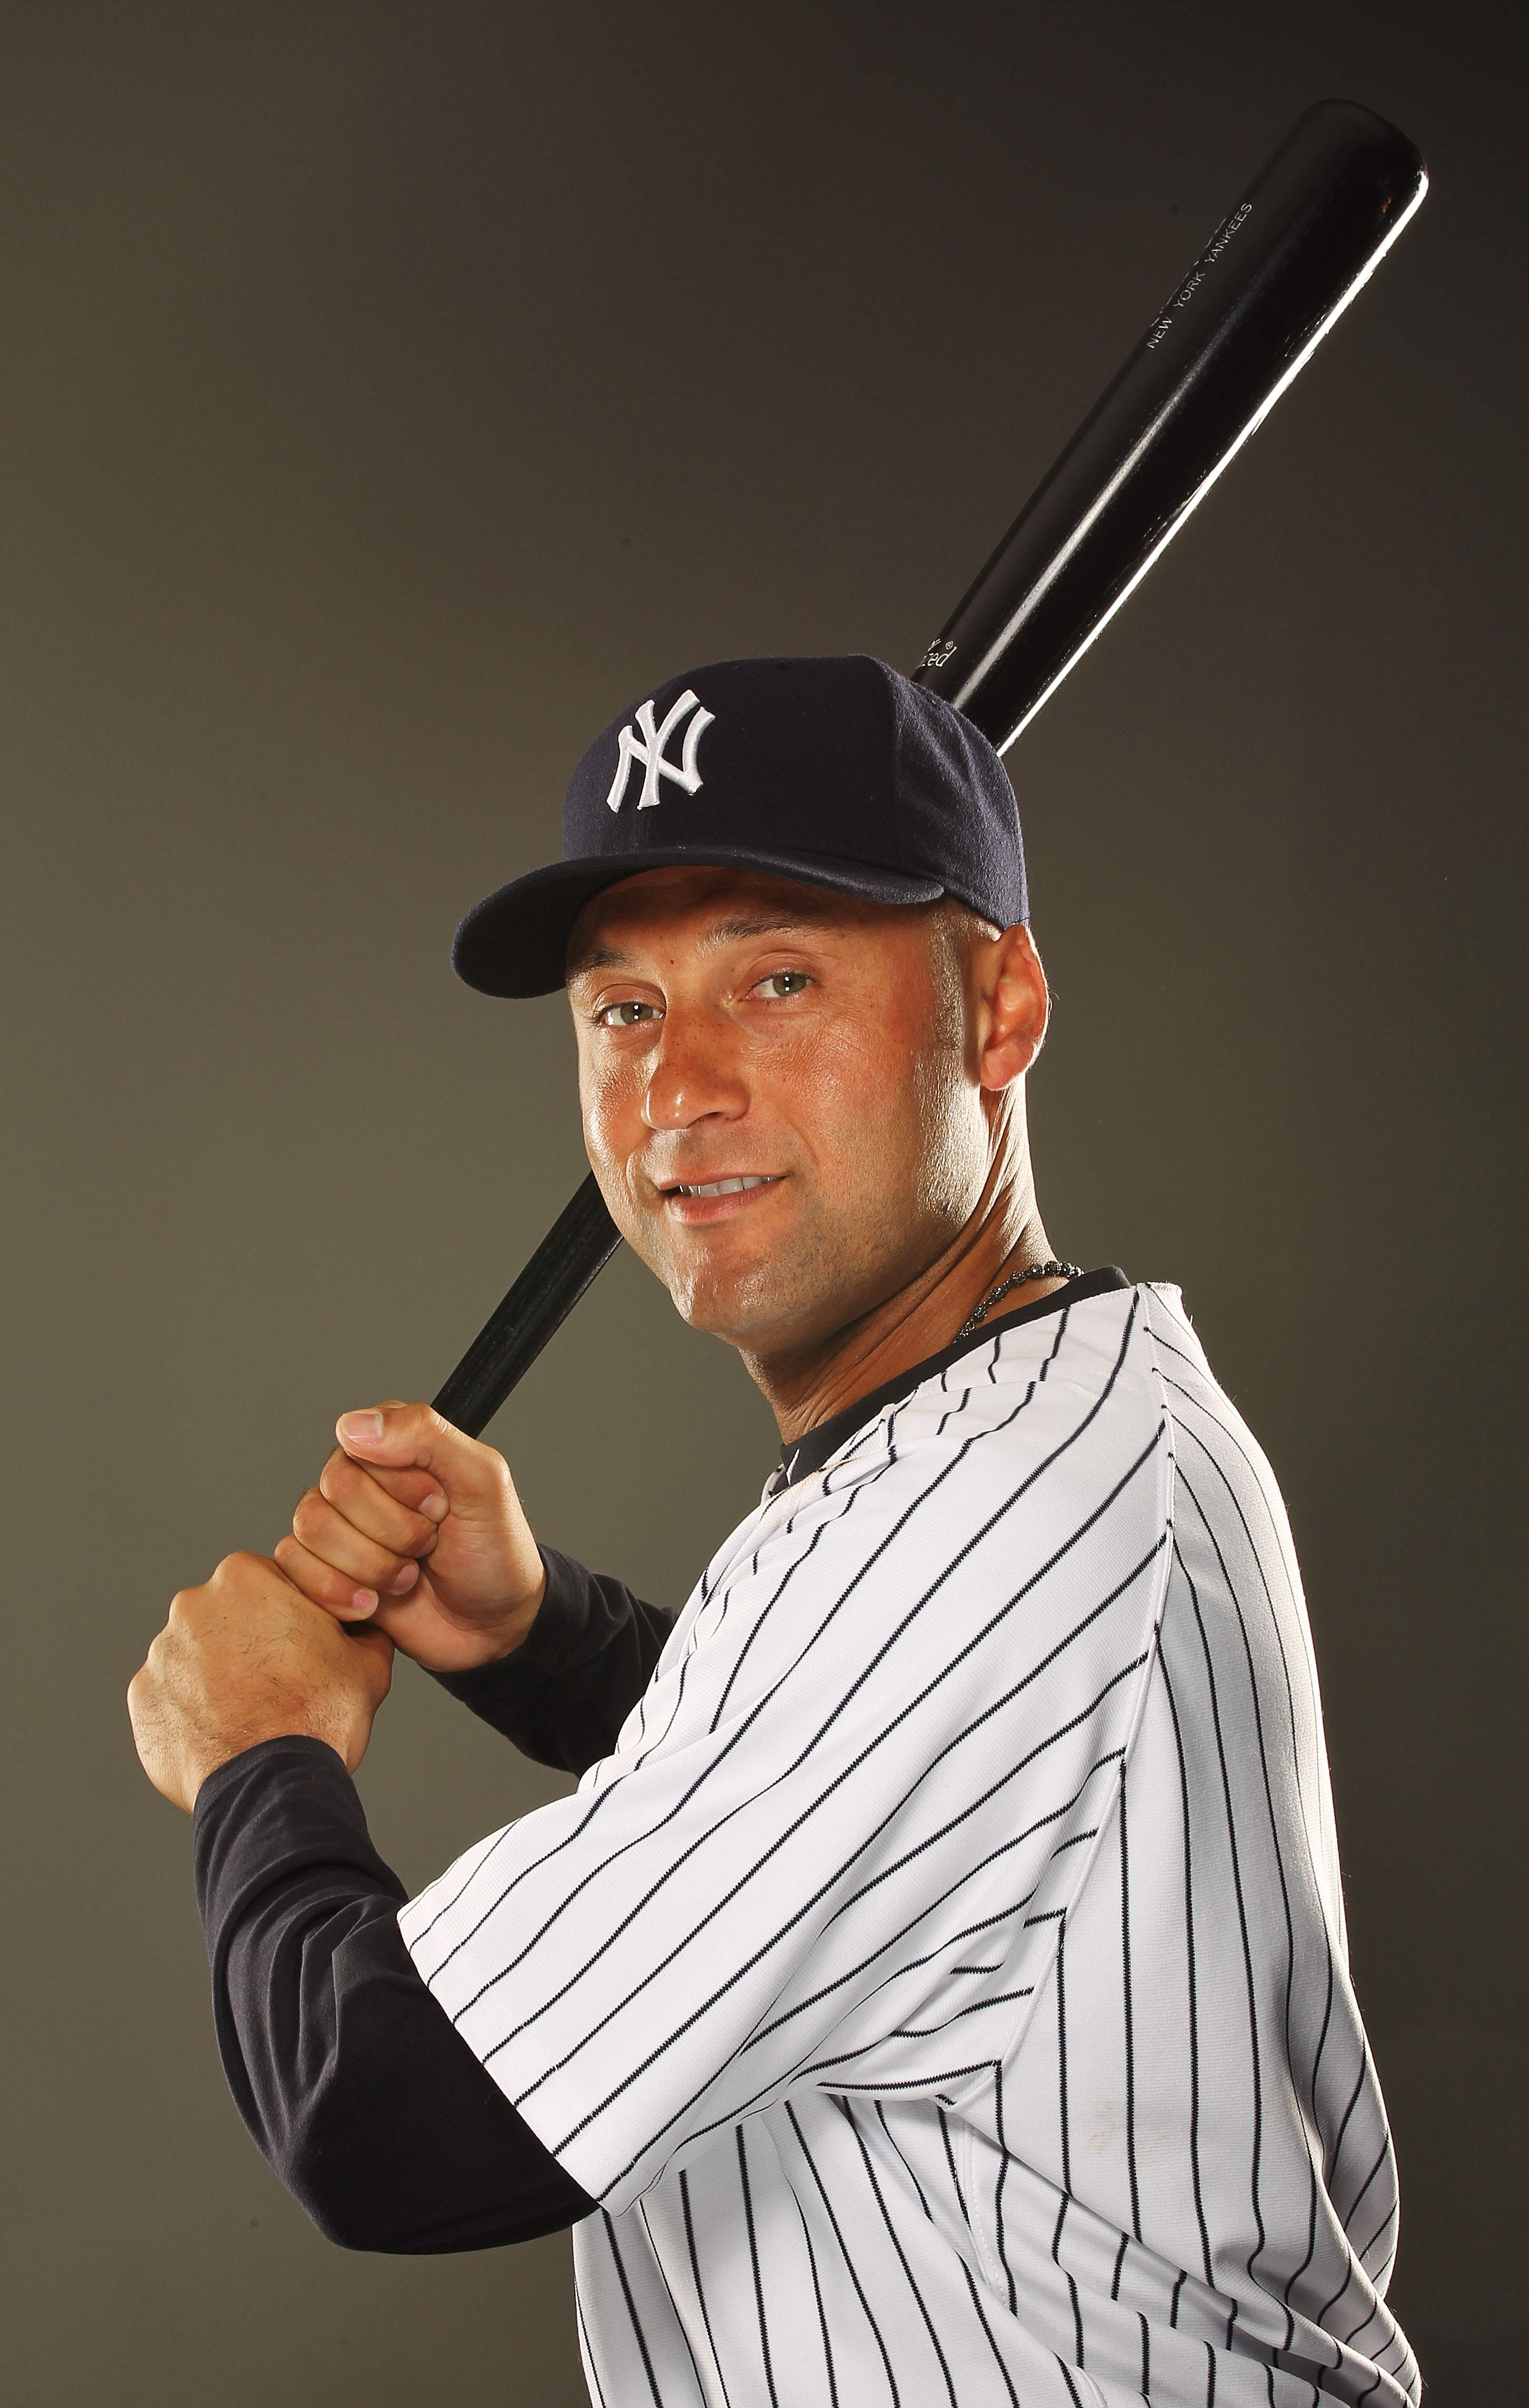 TAMPA, FL - FEBRUARY 23:  Derek Jeter #2 of the New York Yankees poses for a portrait on Photo Day at George M. Steinbrenner Field on February 23, 2011 in Tampa, Florida.  (Photo by Al Bello/Getty Images)